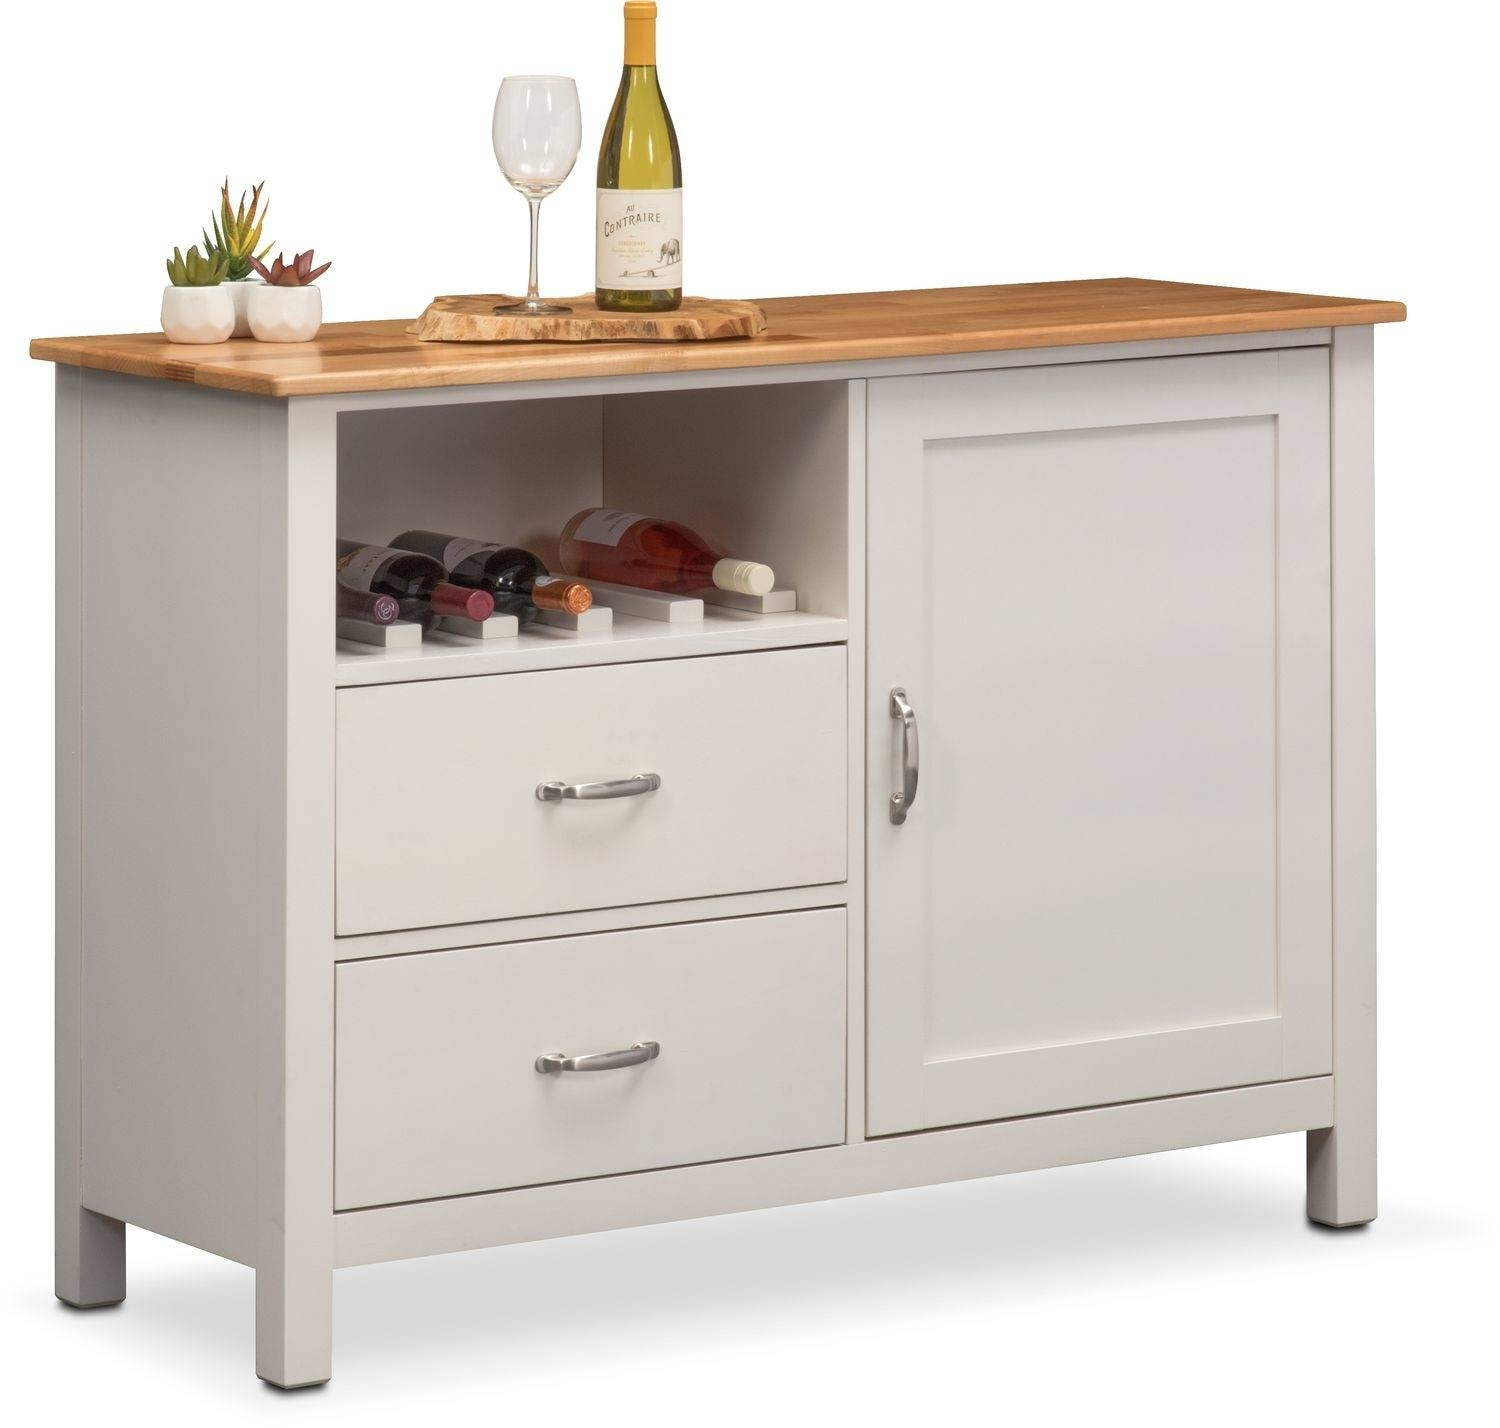 Nantucket Sideboard – Maple And White | Value City Furniture And For Most Popular Maple Sideboards (View 3 of 15)